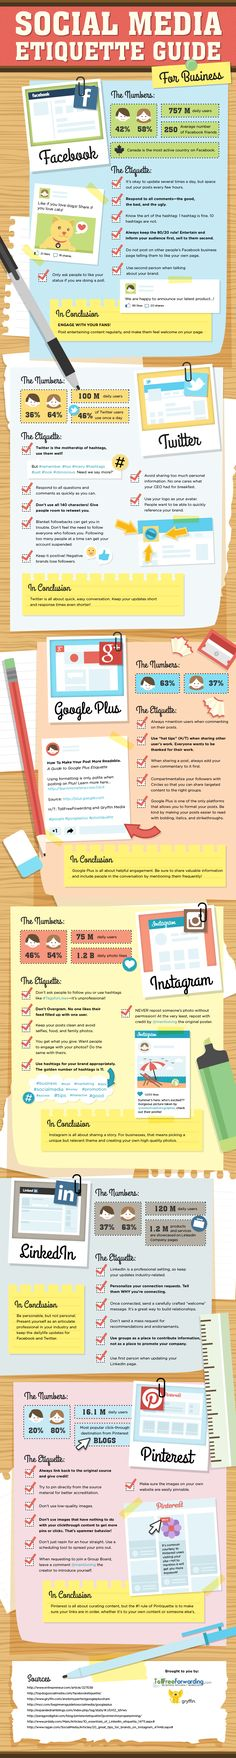 Infographic: The Social Media Etiquette Guide to Business